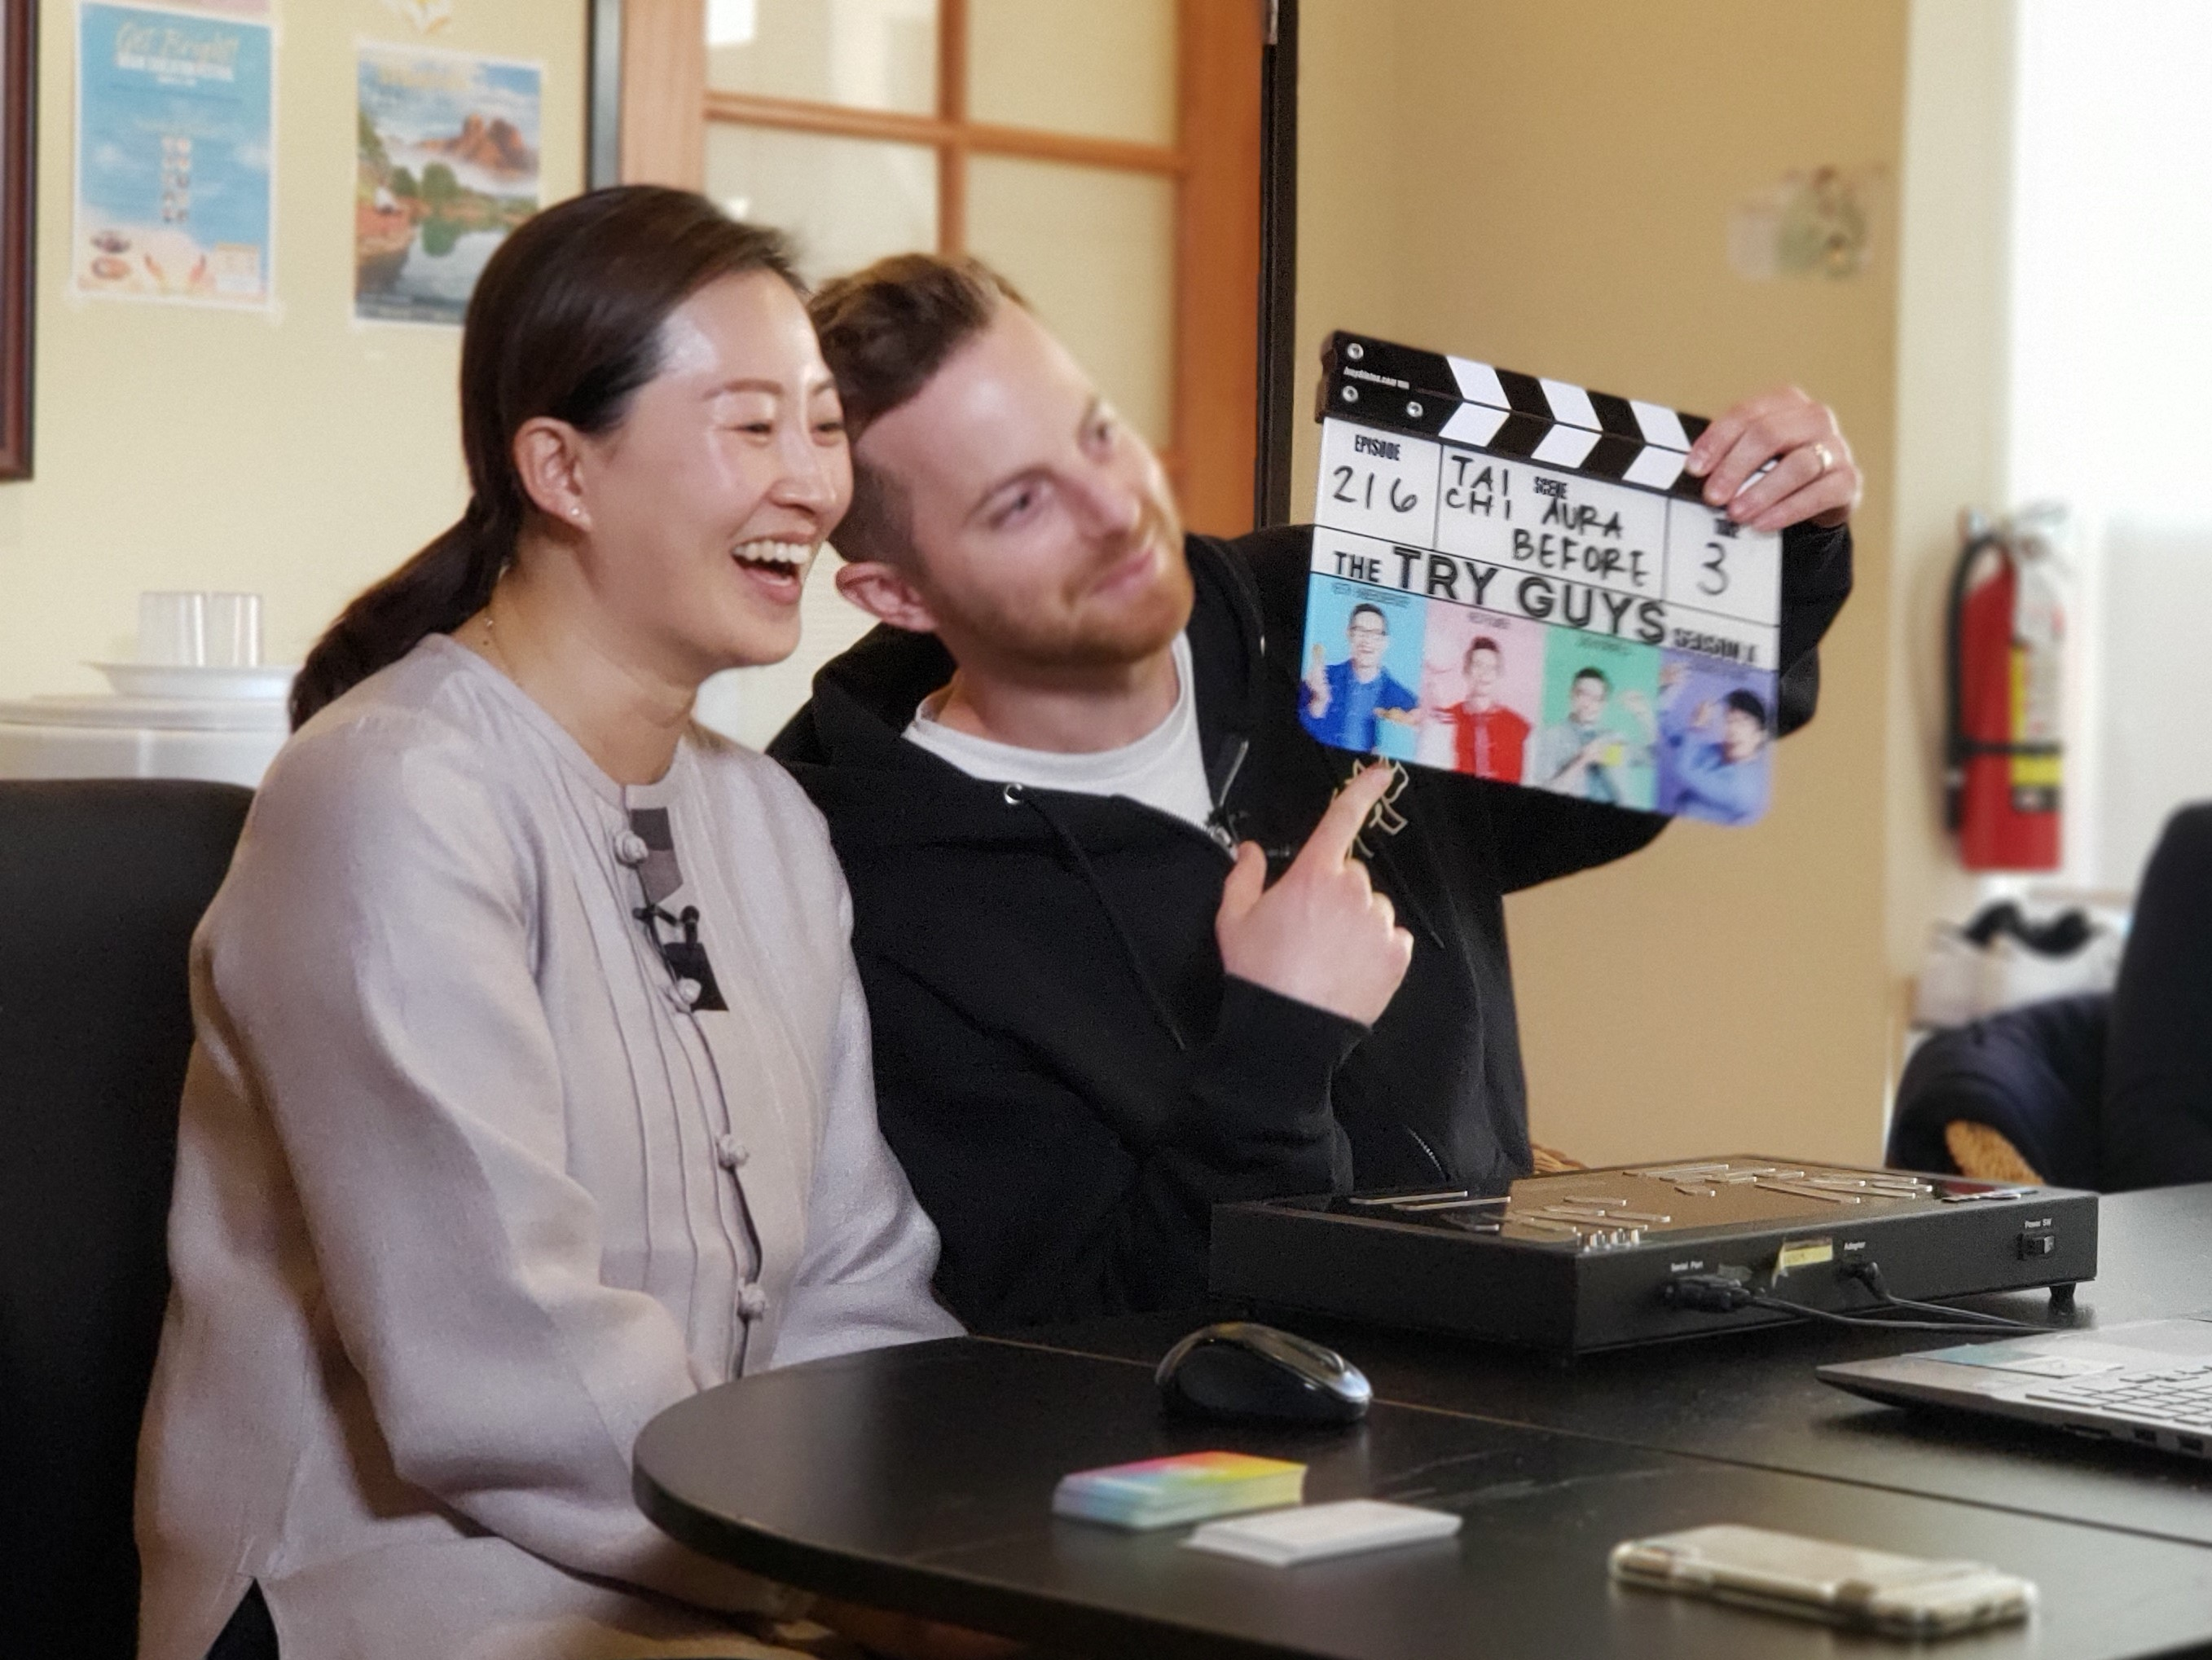 Ned bravely takes the hot seat with Master Michelle